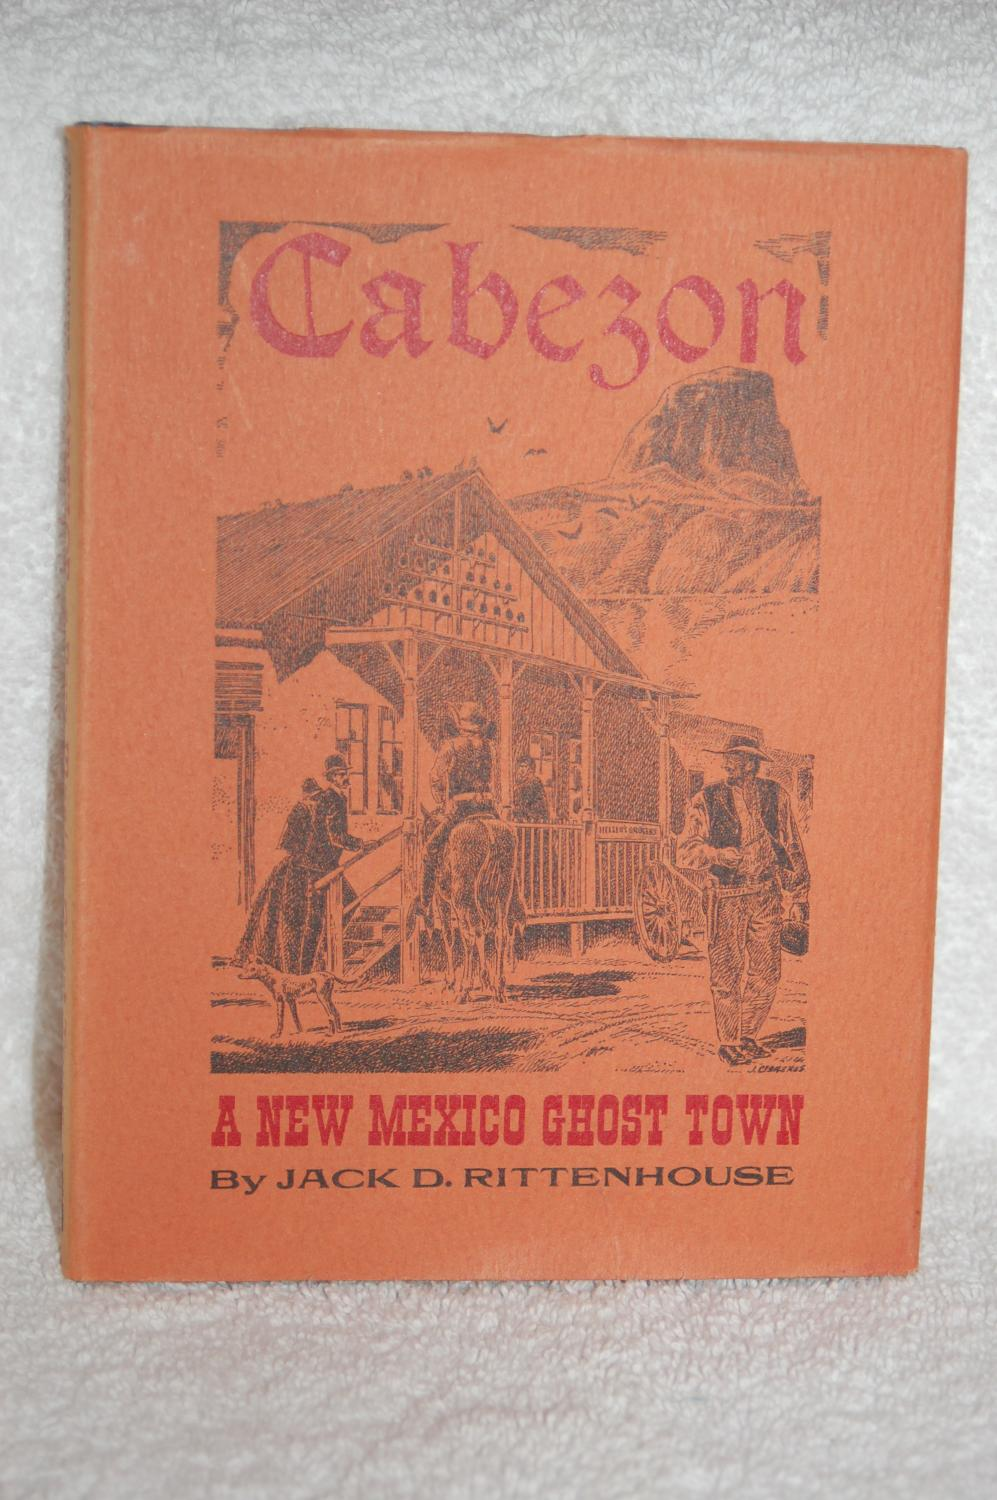 Cabezon: A New Mexico Ghost Town: Jack D. Rittenhouse